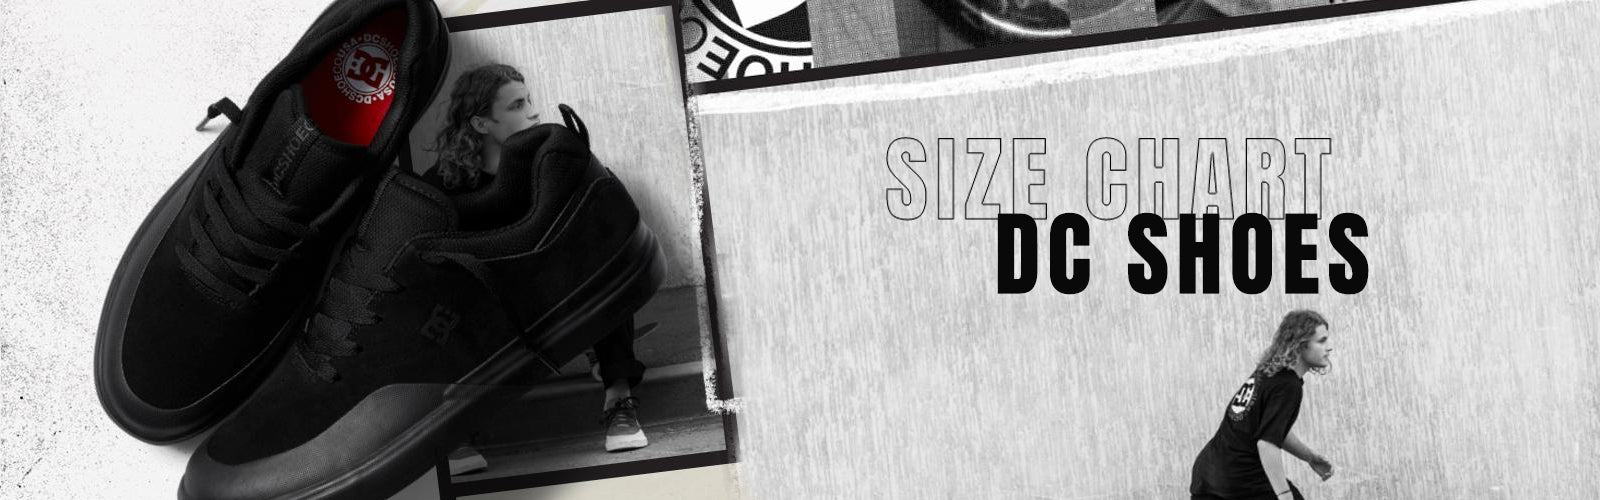 DC Shoes Size Chart